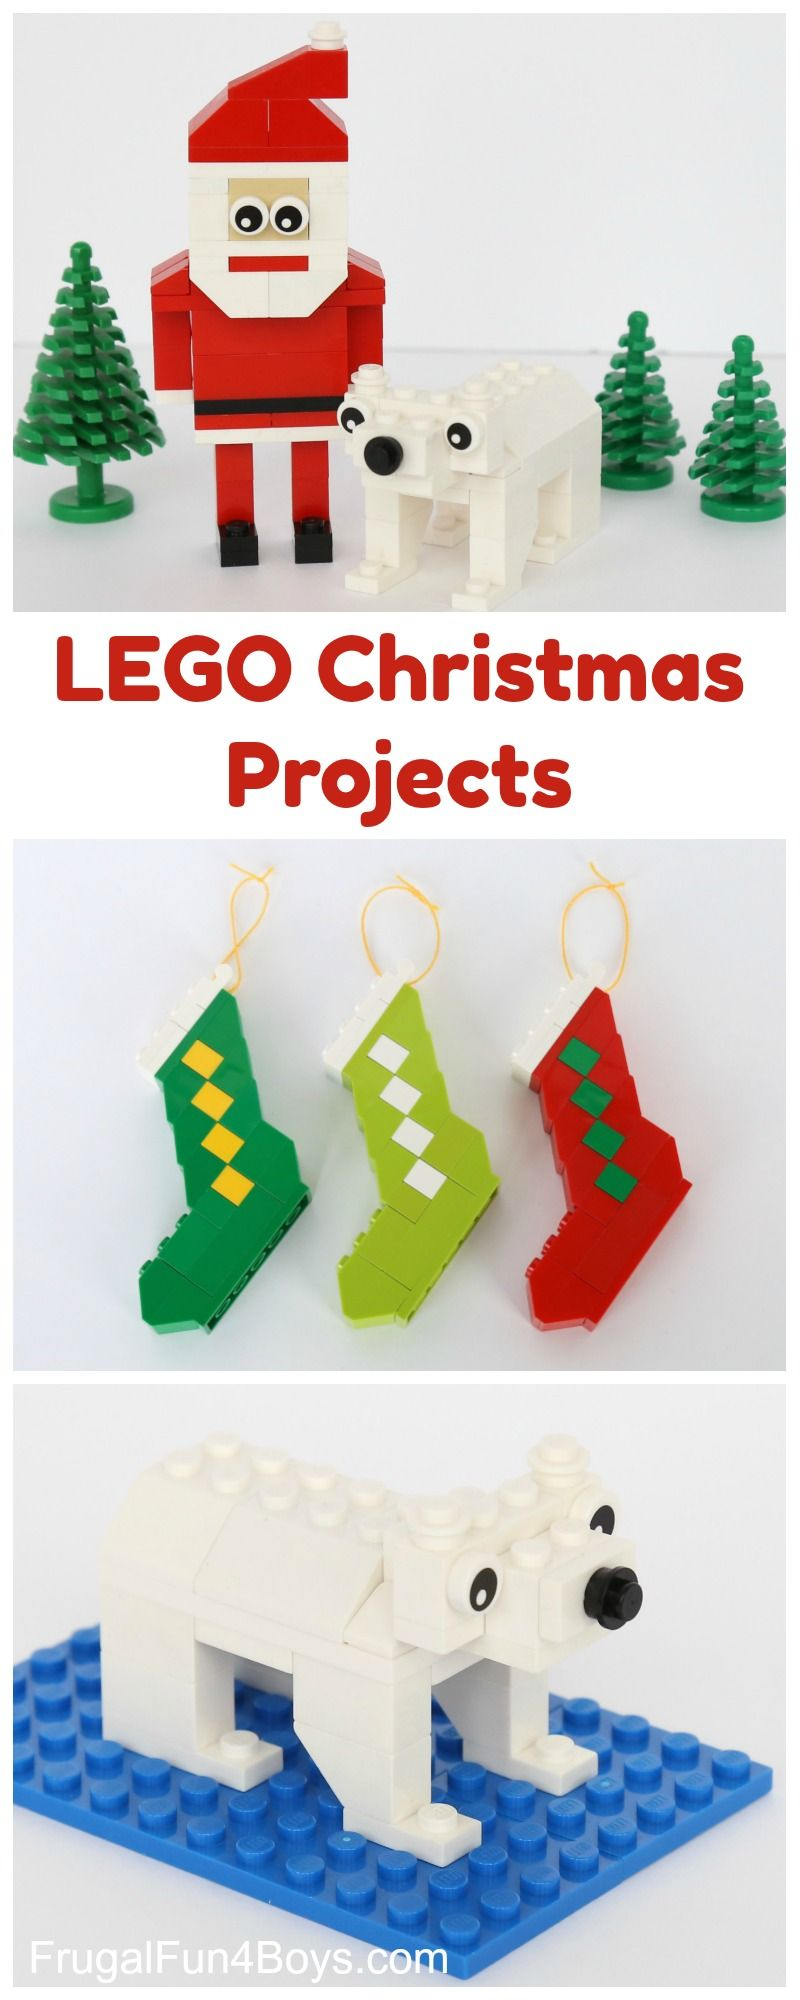 How to build a lego santa and stocking ornaments lego christmas